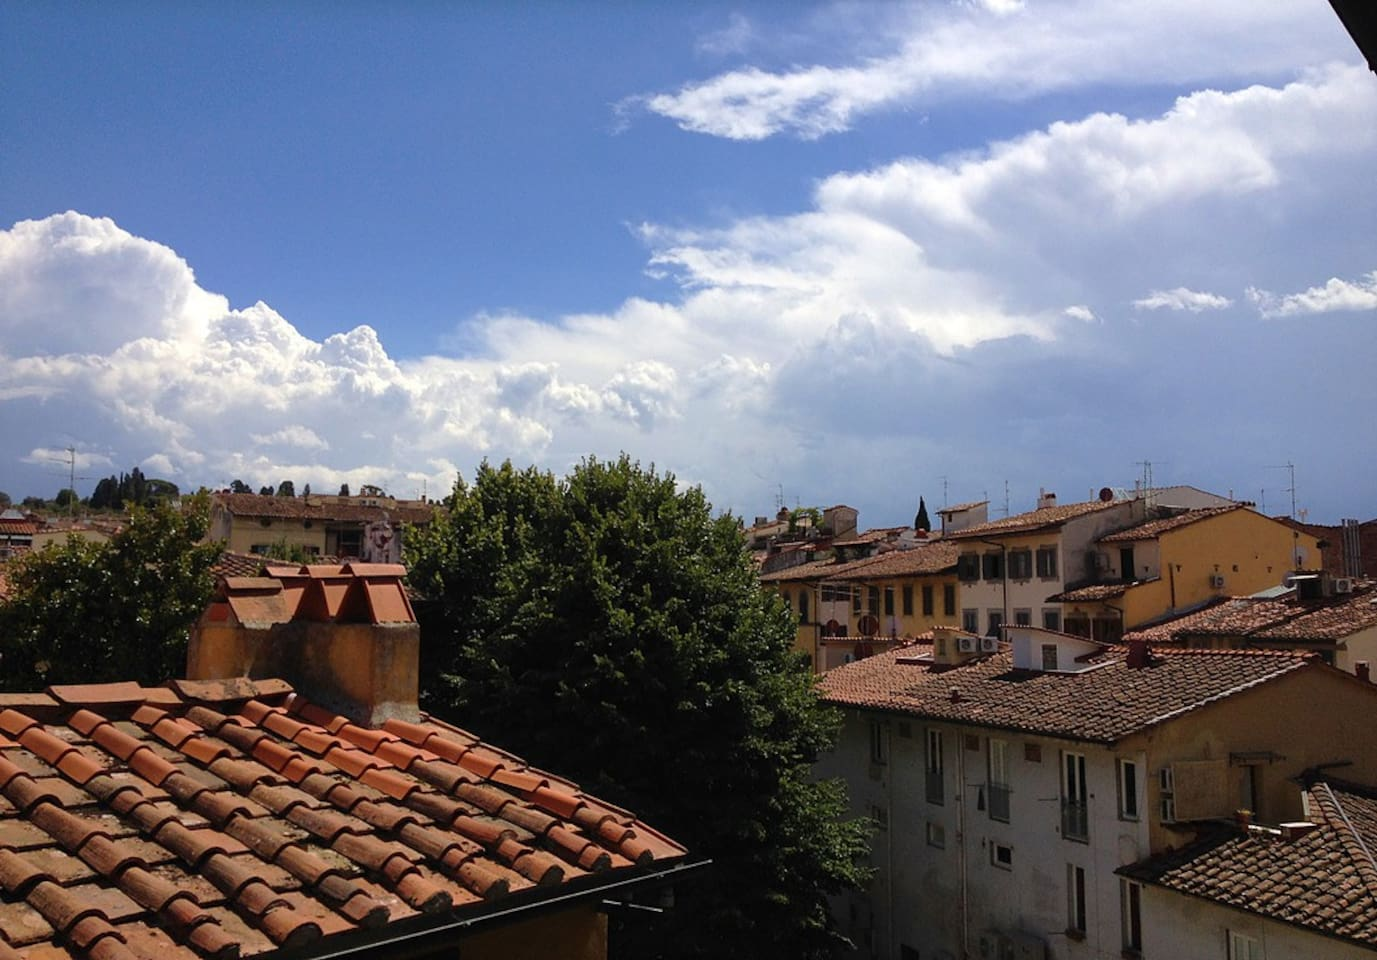 View of the Santo Spirito neighborhood's rooftops from the apartment